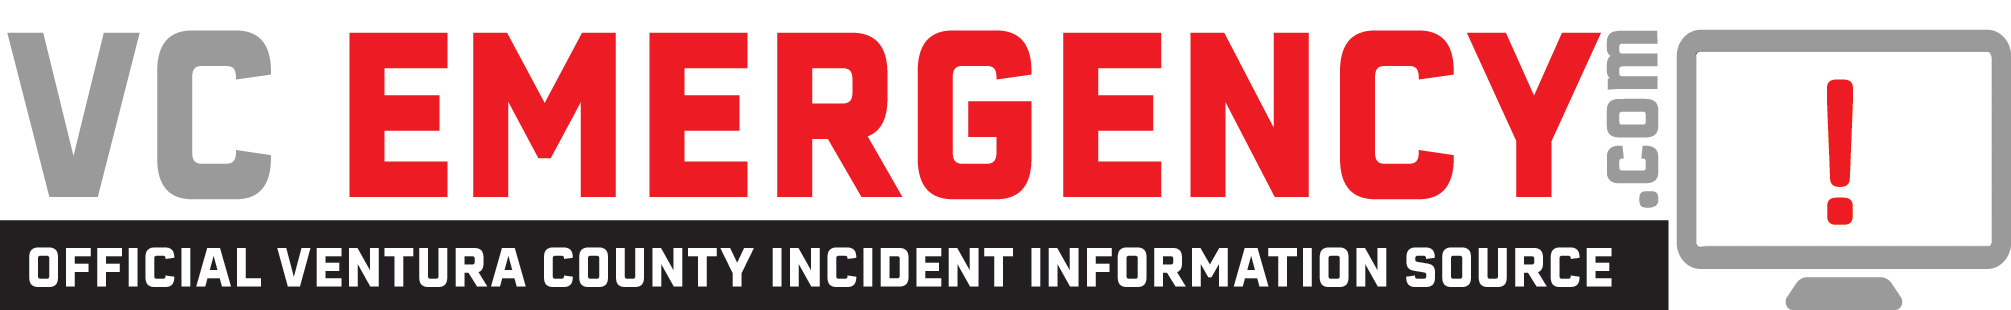 VC Emergency Official Ventura County Incident Information Source